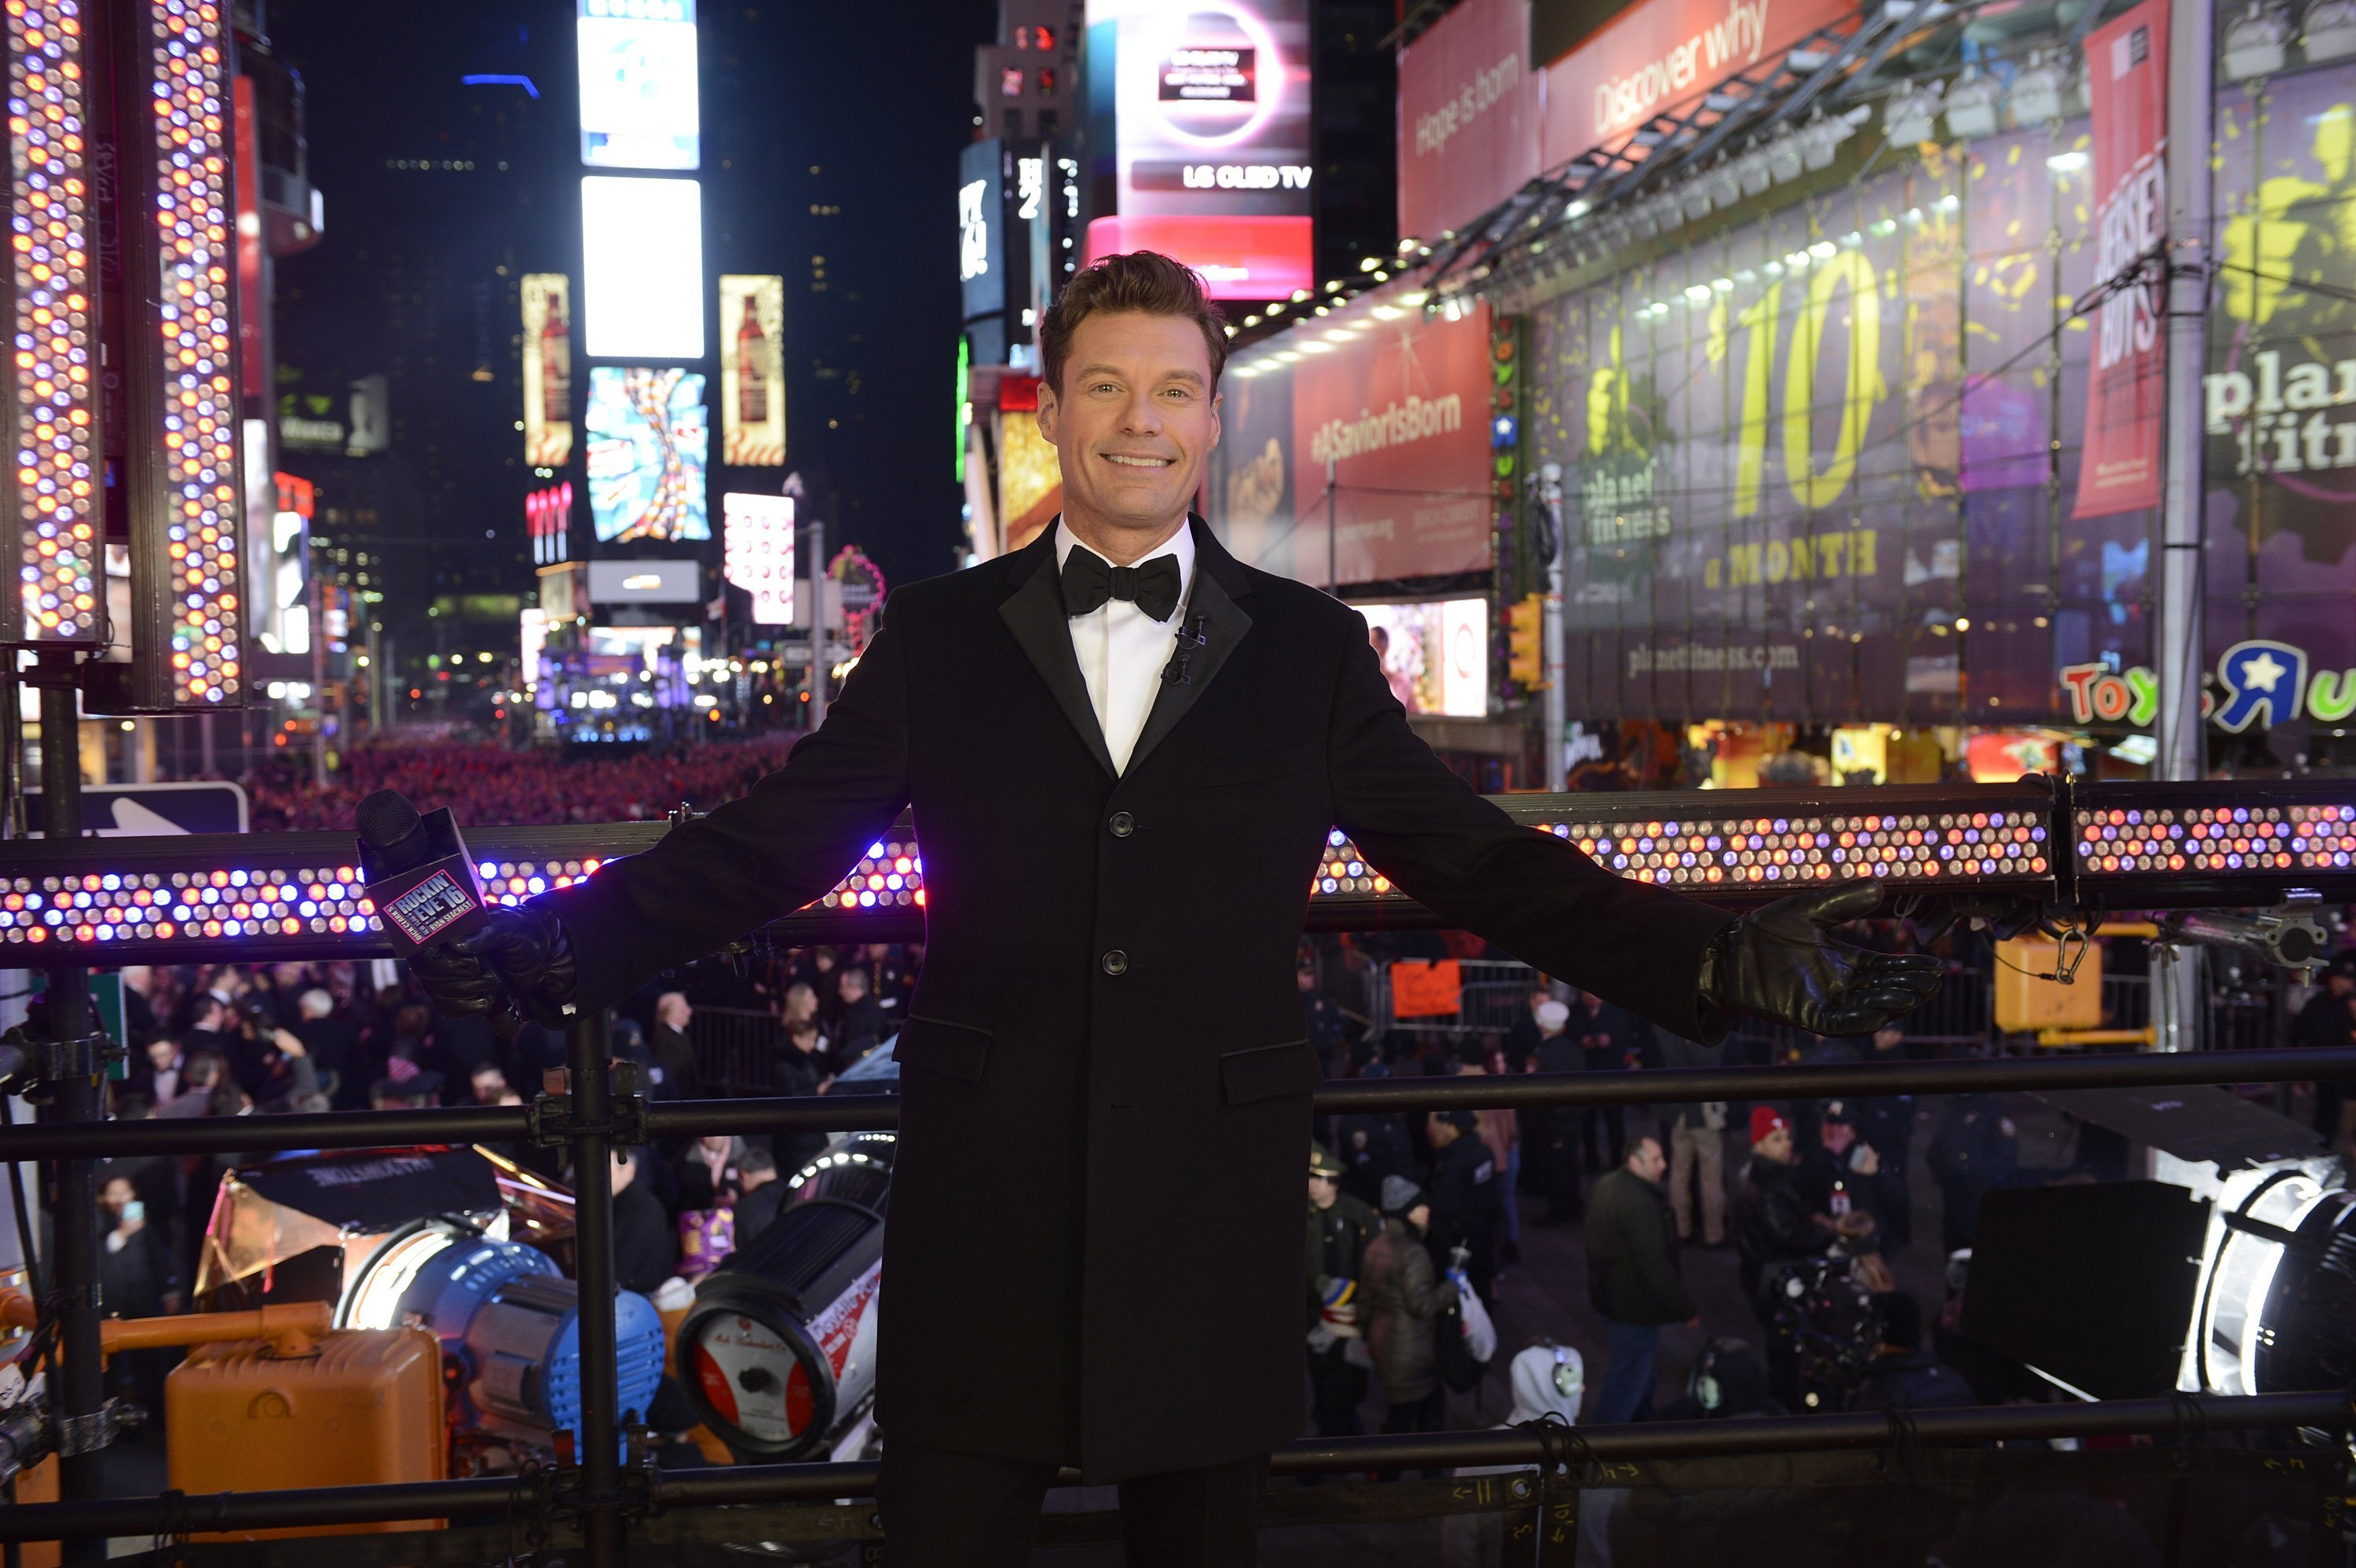 Ryan Seacrest announced as new 'Live' co-host alongside Kelly Ripa